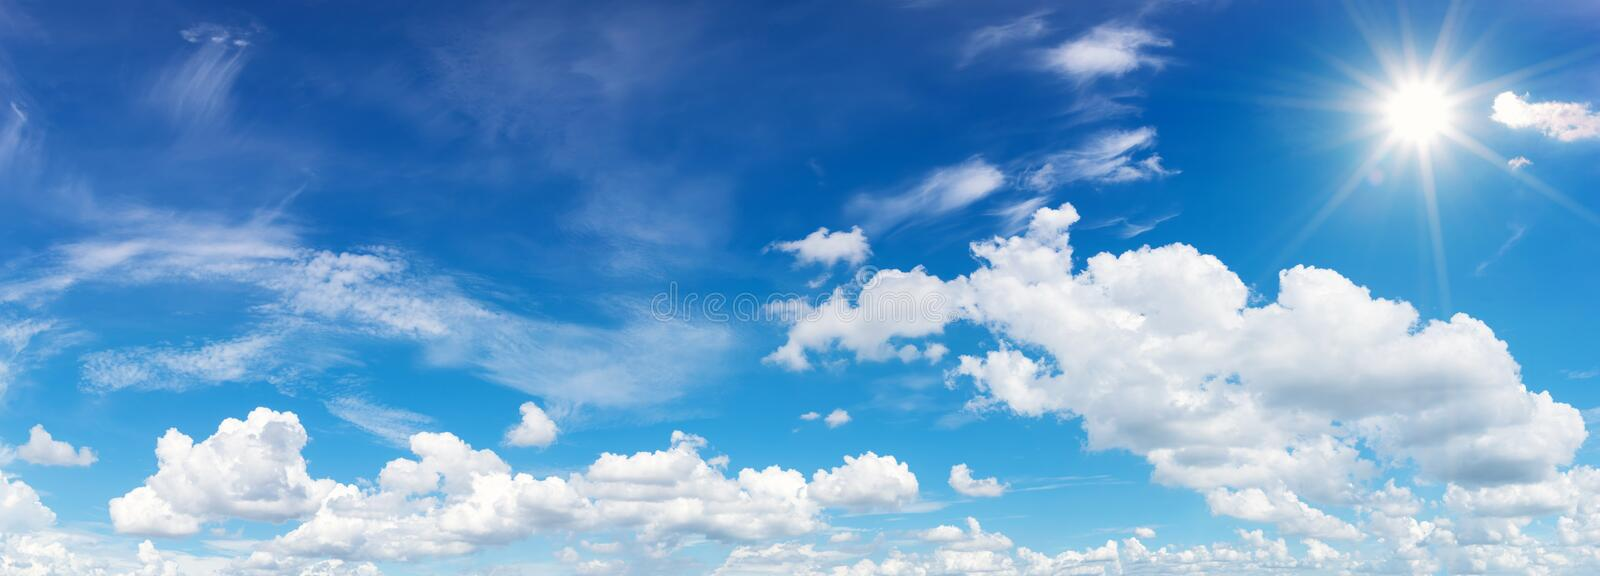 blue sky with clouds and sun reflection.The sun shines bright in royalty free stock images